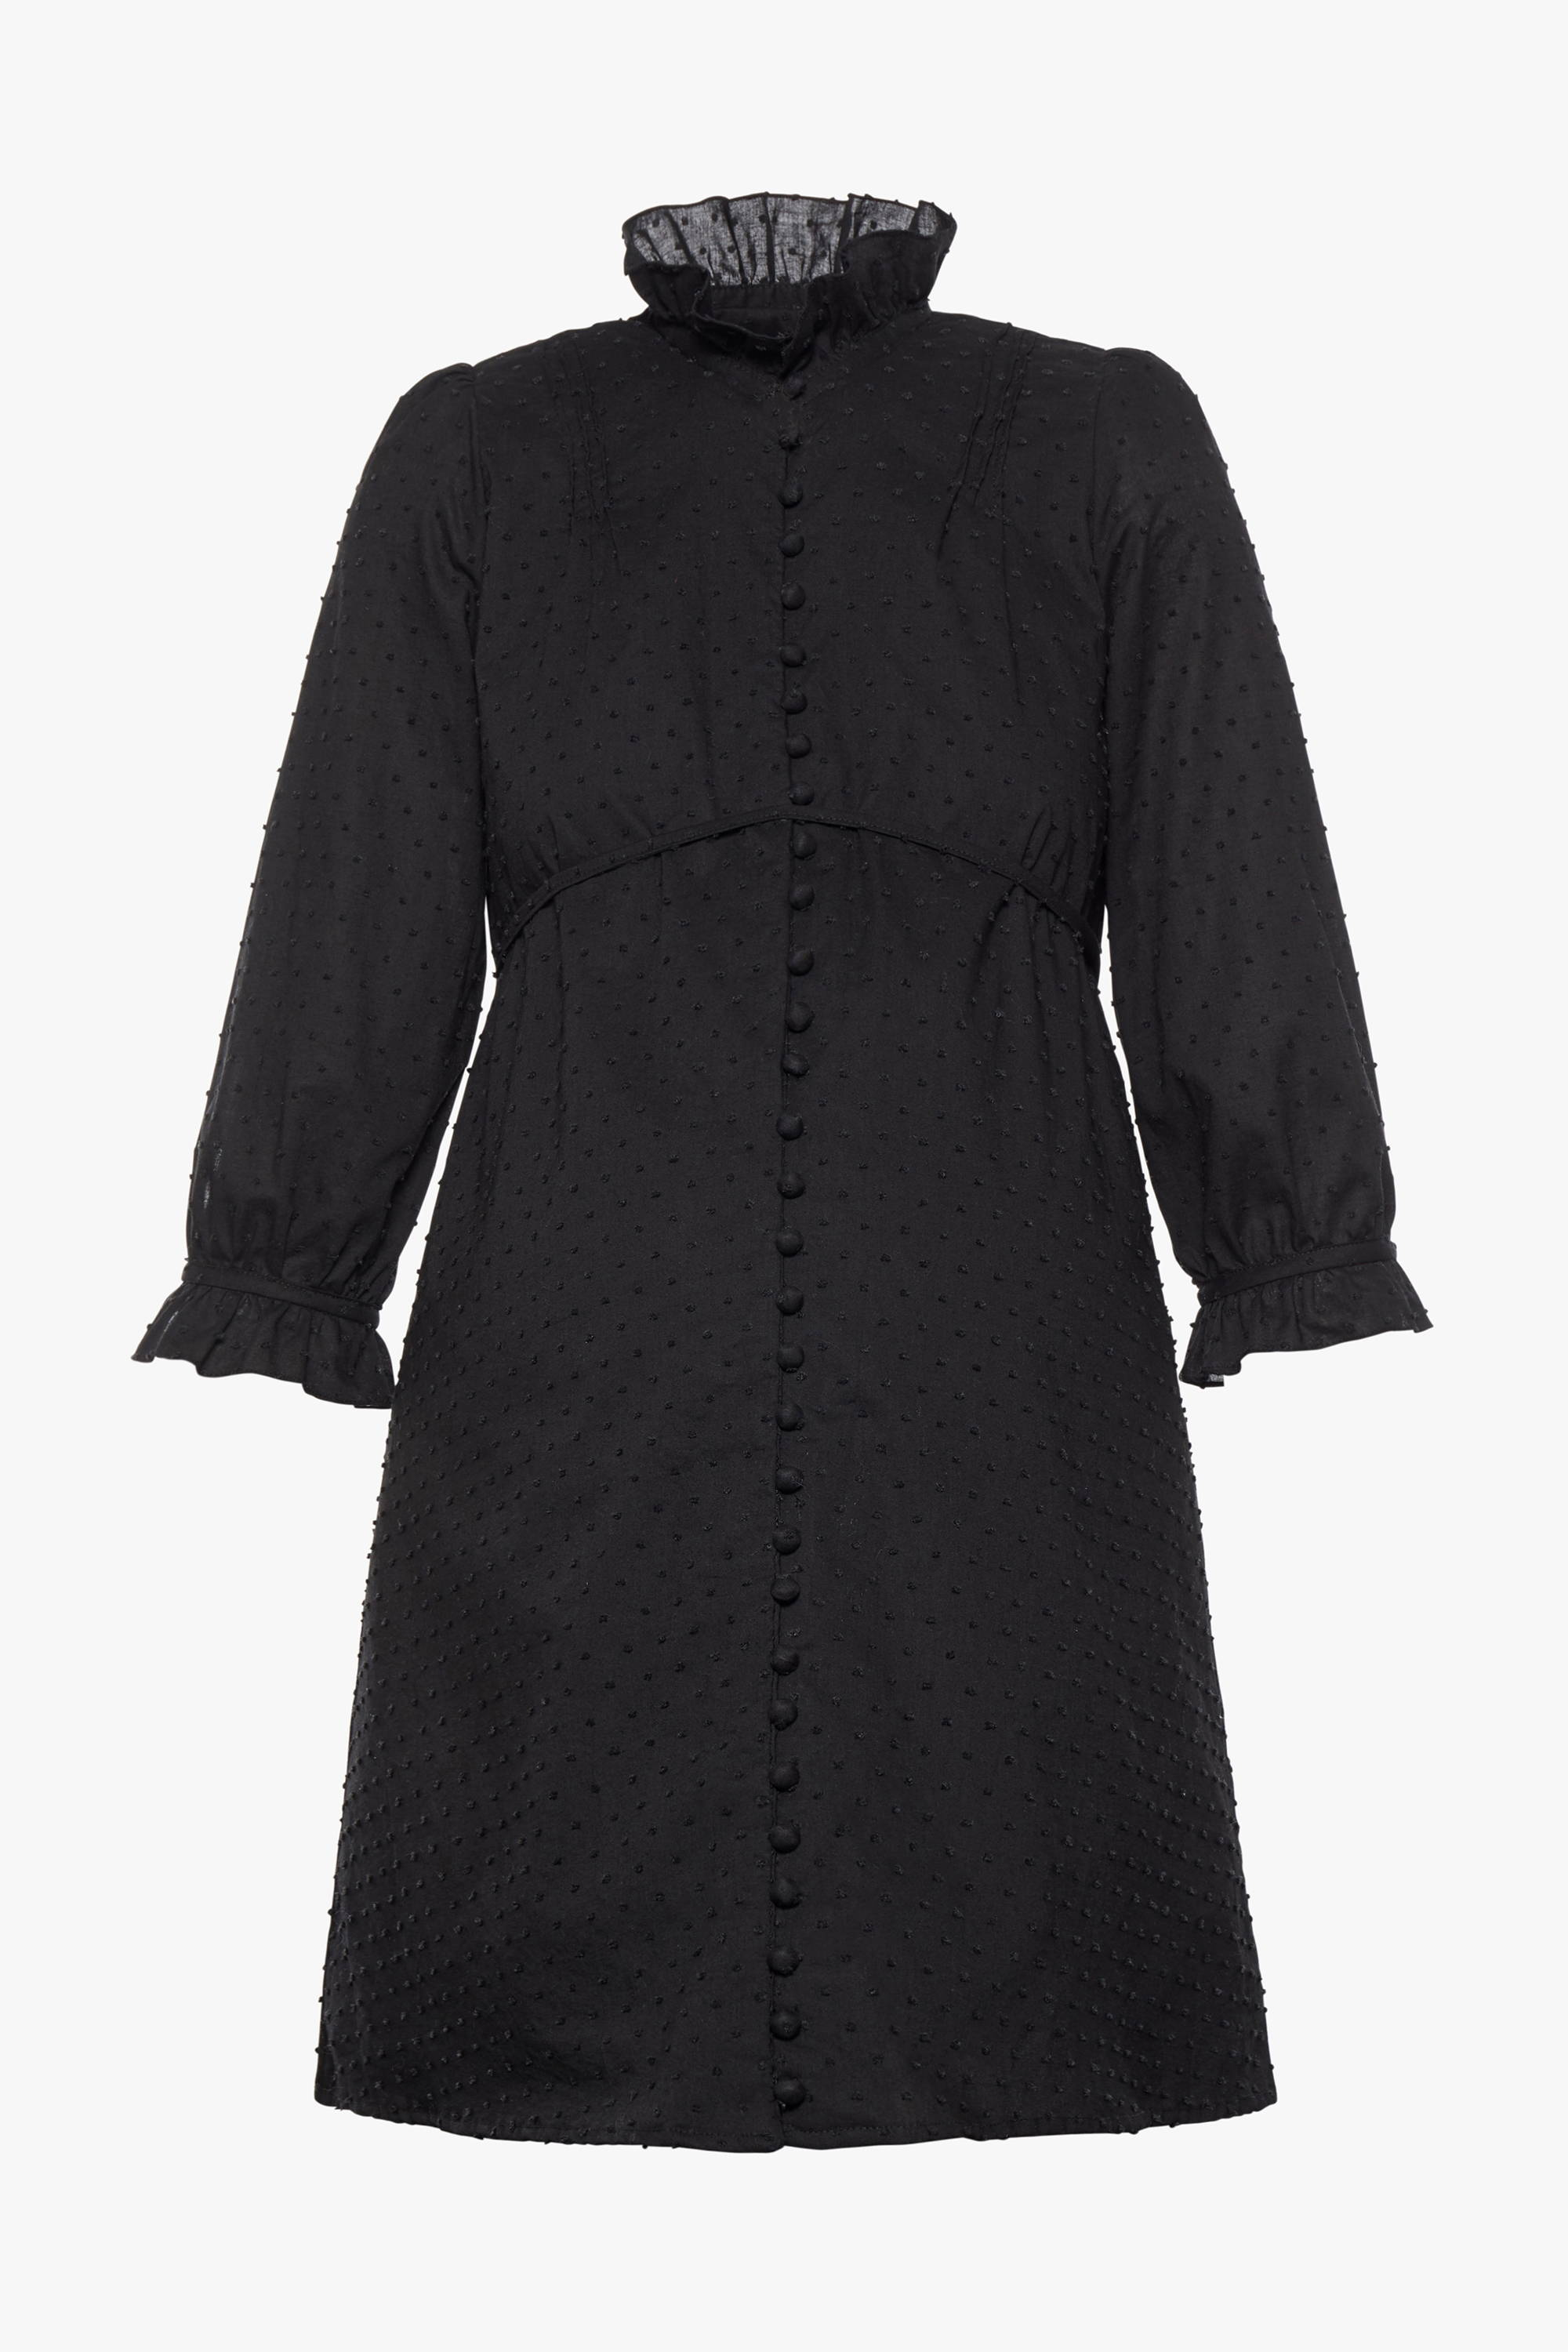 The maternity friendly Nichols dress in black dot cotton